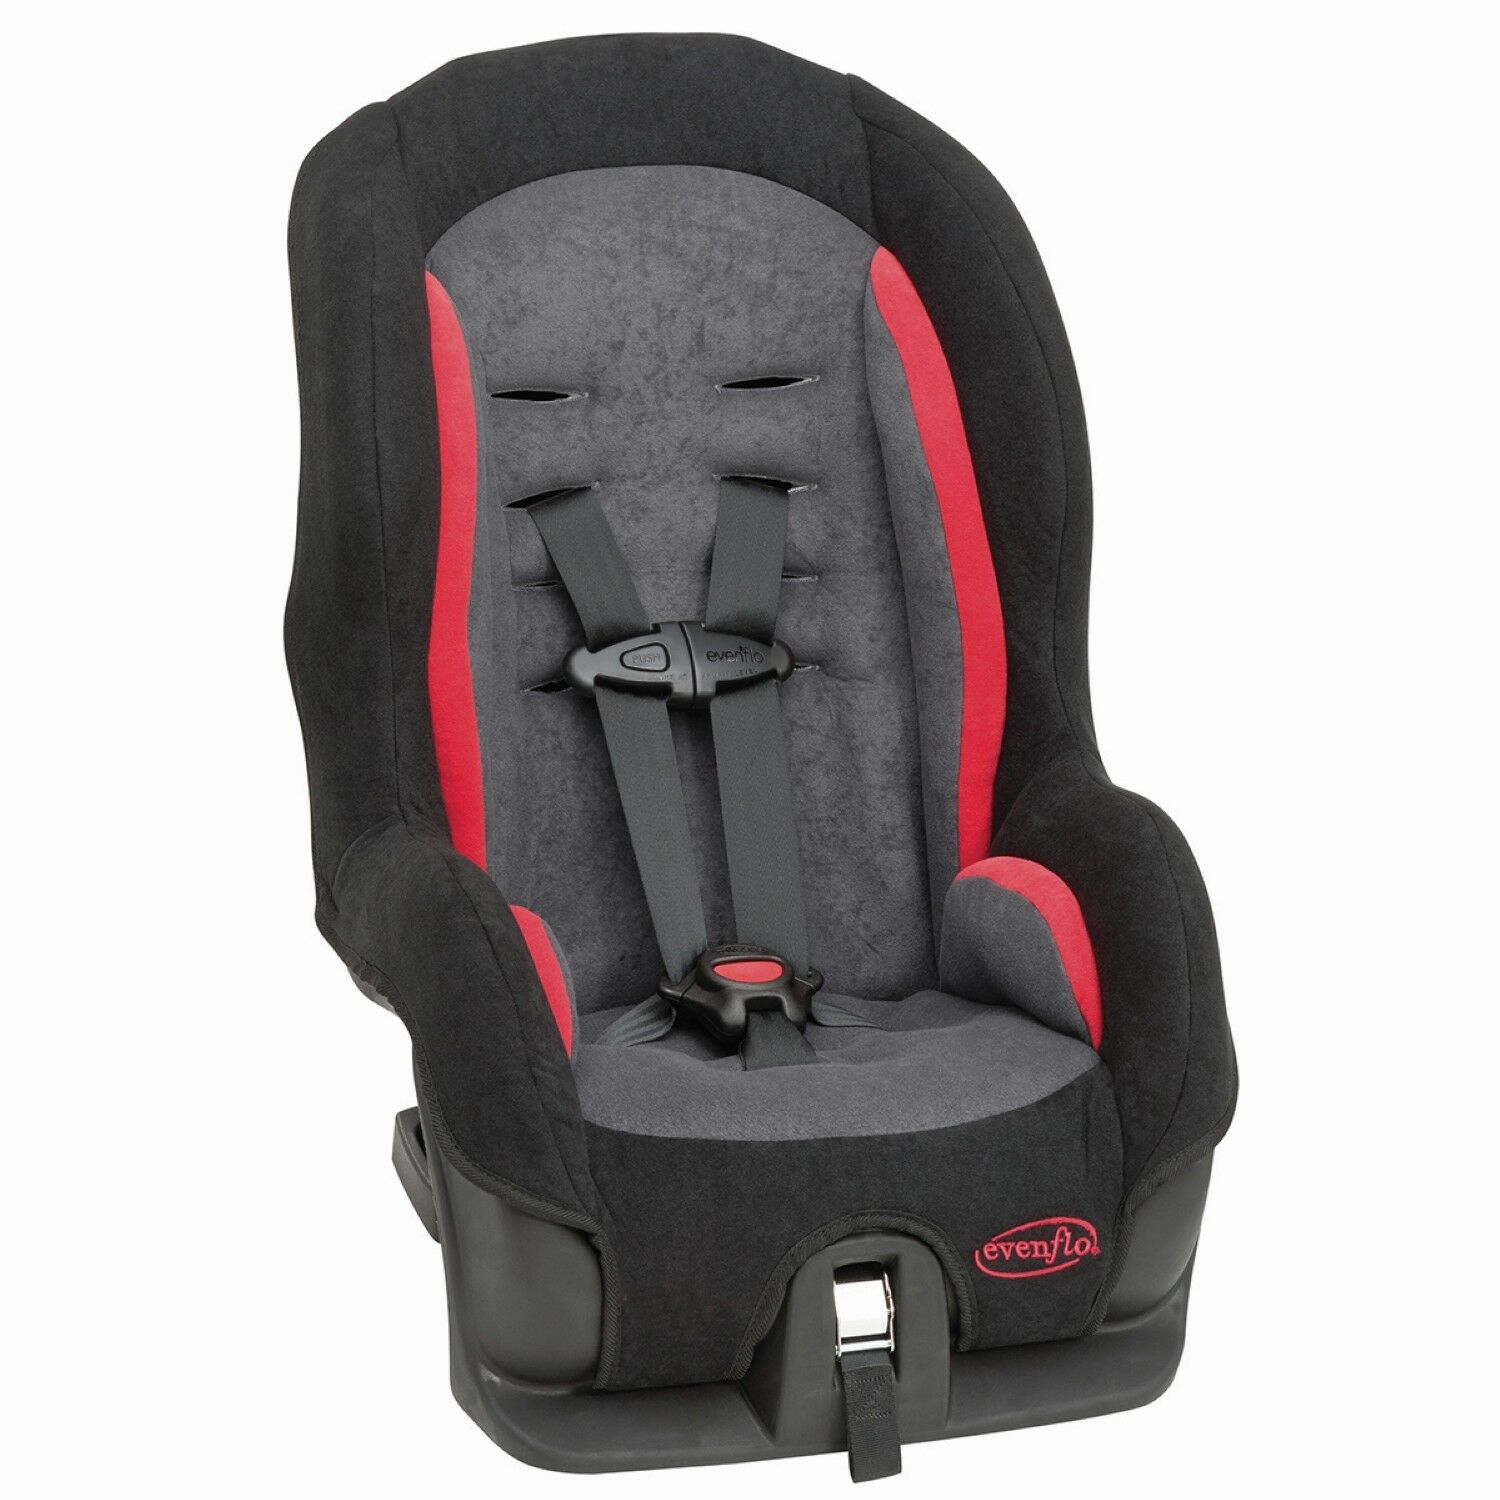 3 In 1 Baby Convertible Car Seat Child Toddler Infant Sport Chair Evenflo Of 10FREE Shipping See More